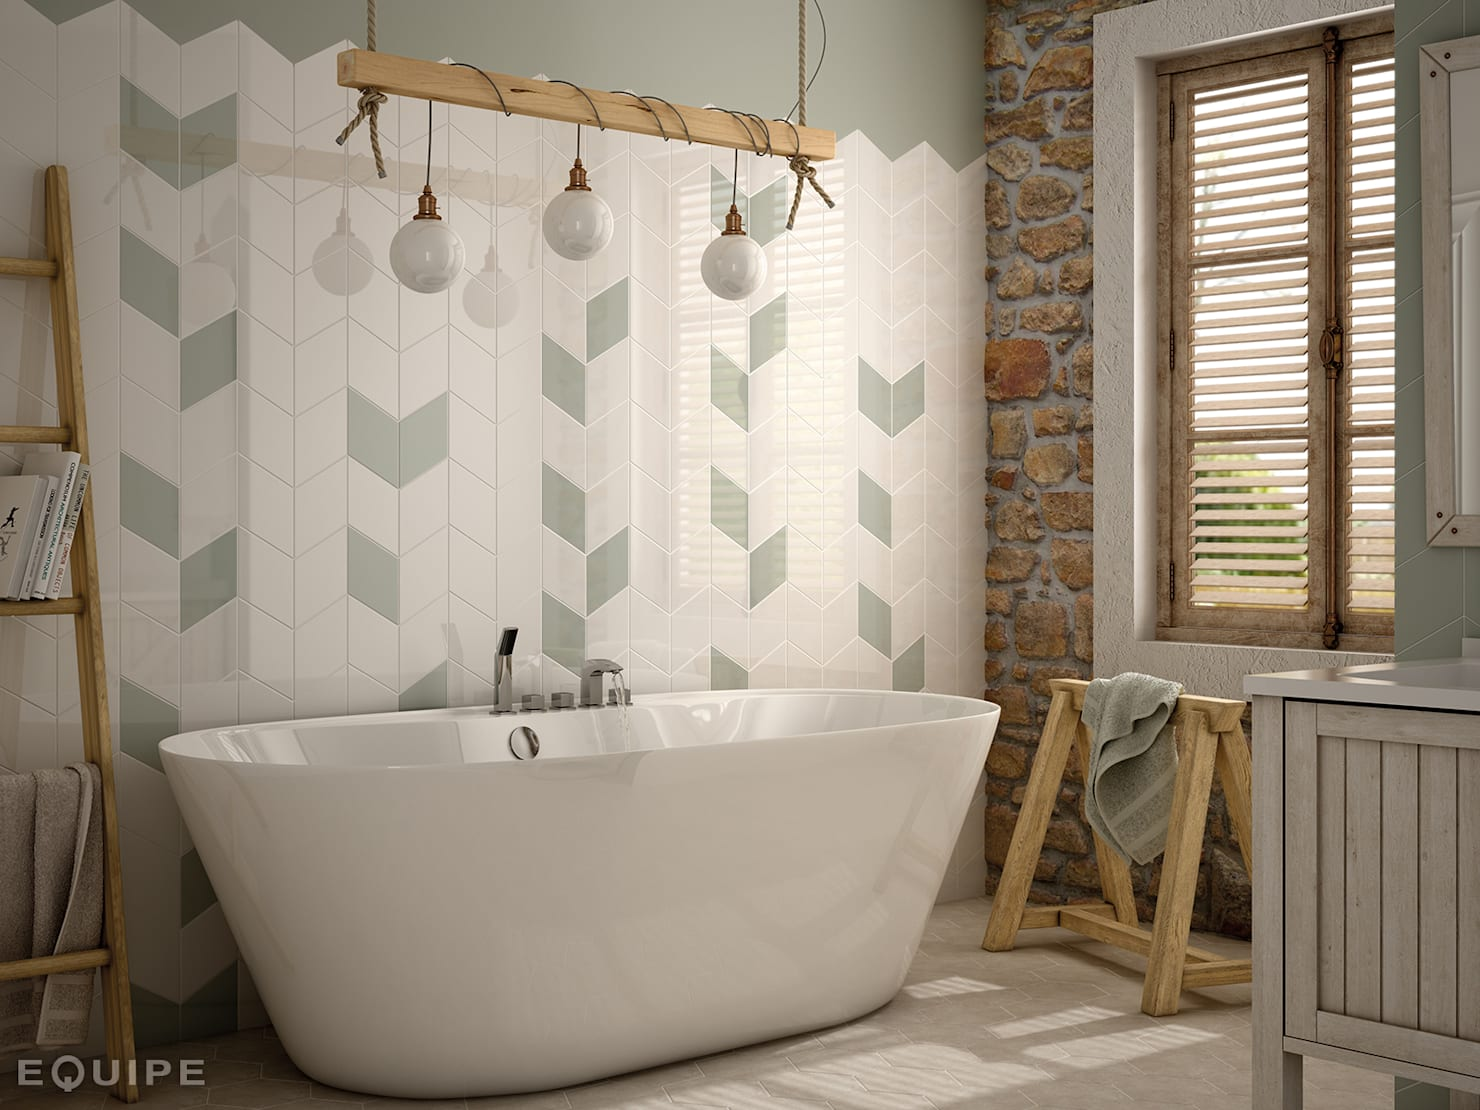 10 simple ways to renovate the bathroom